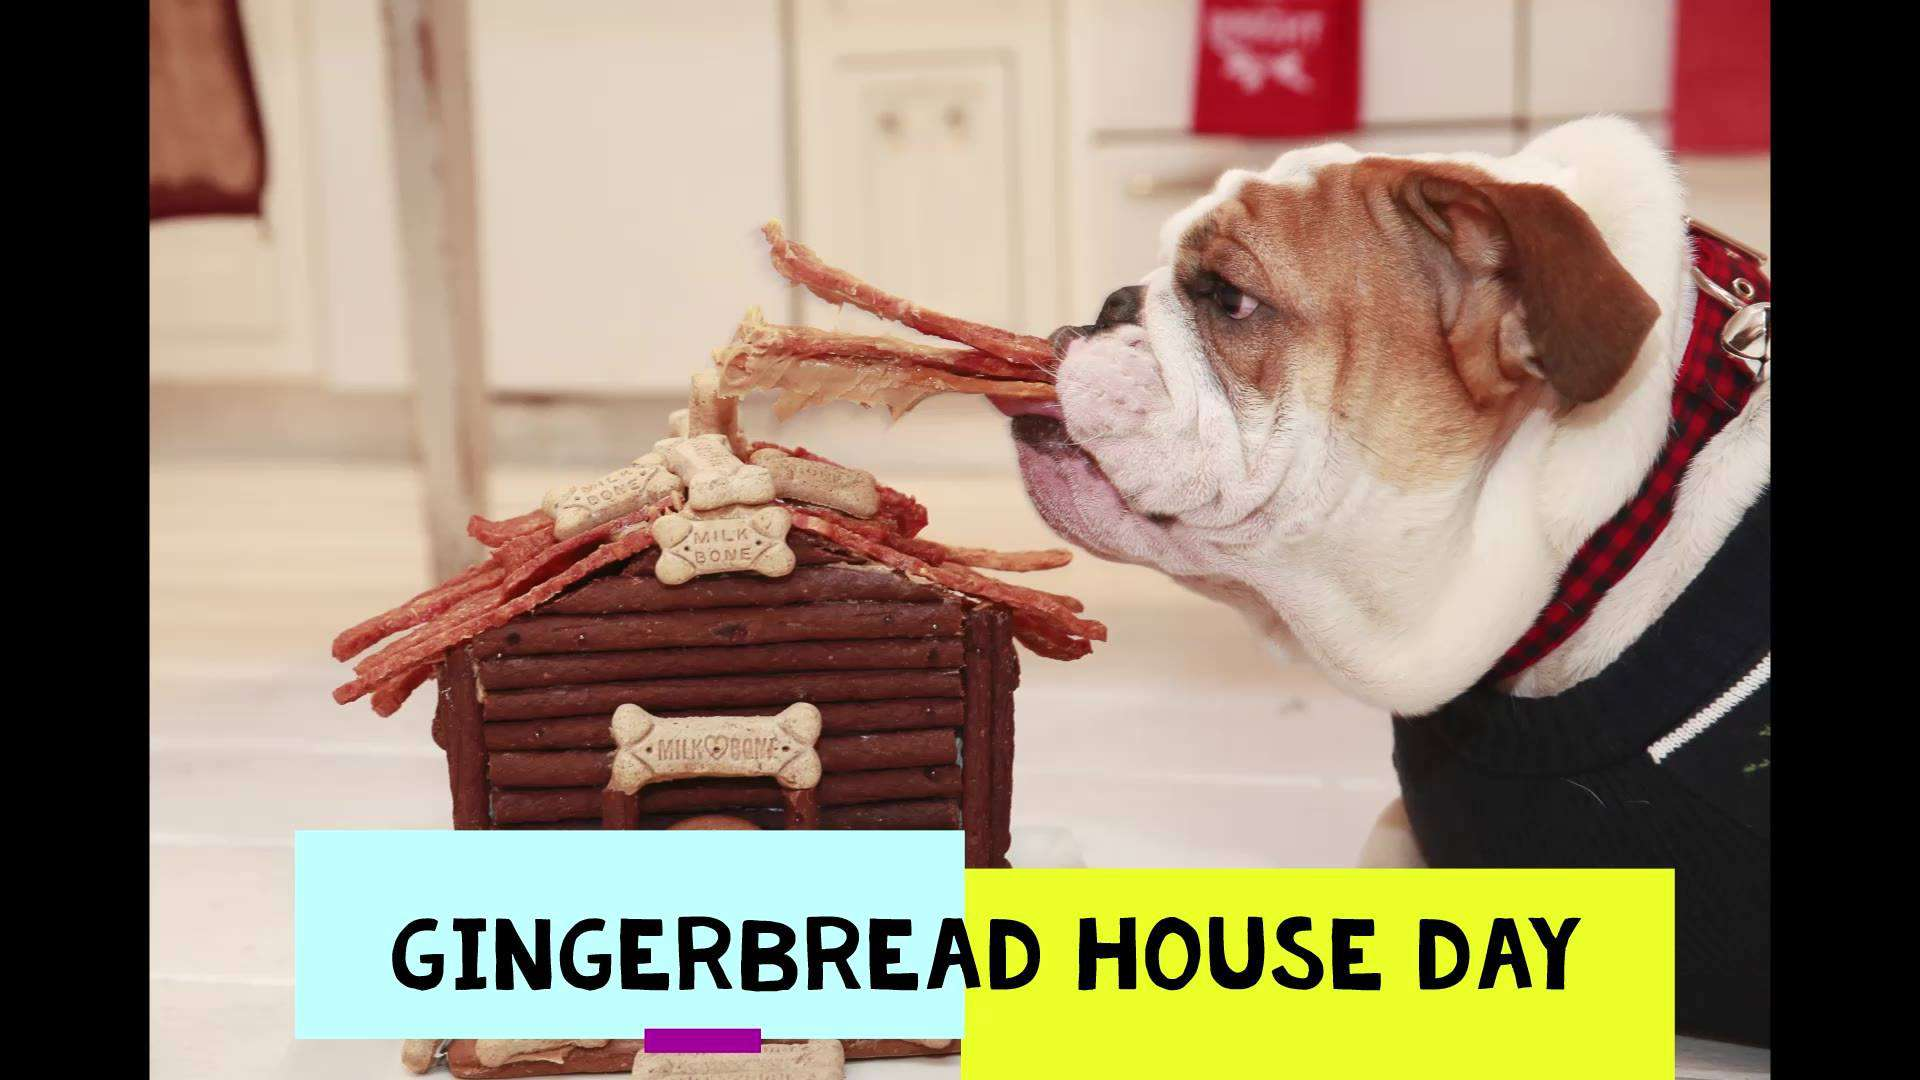 Gingerbread House Day Wishes Awesome Picture